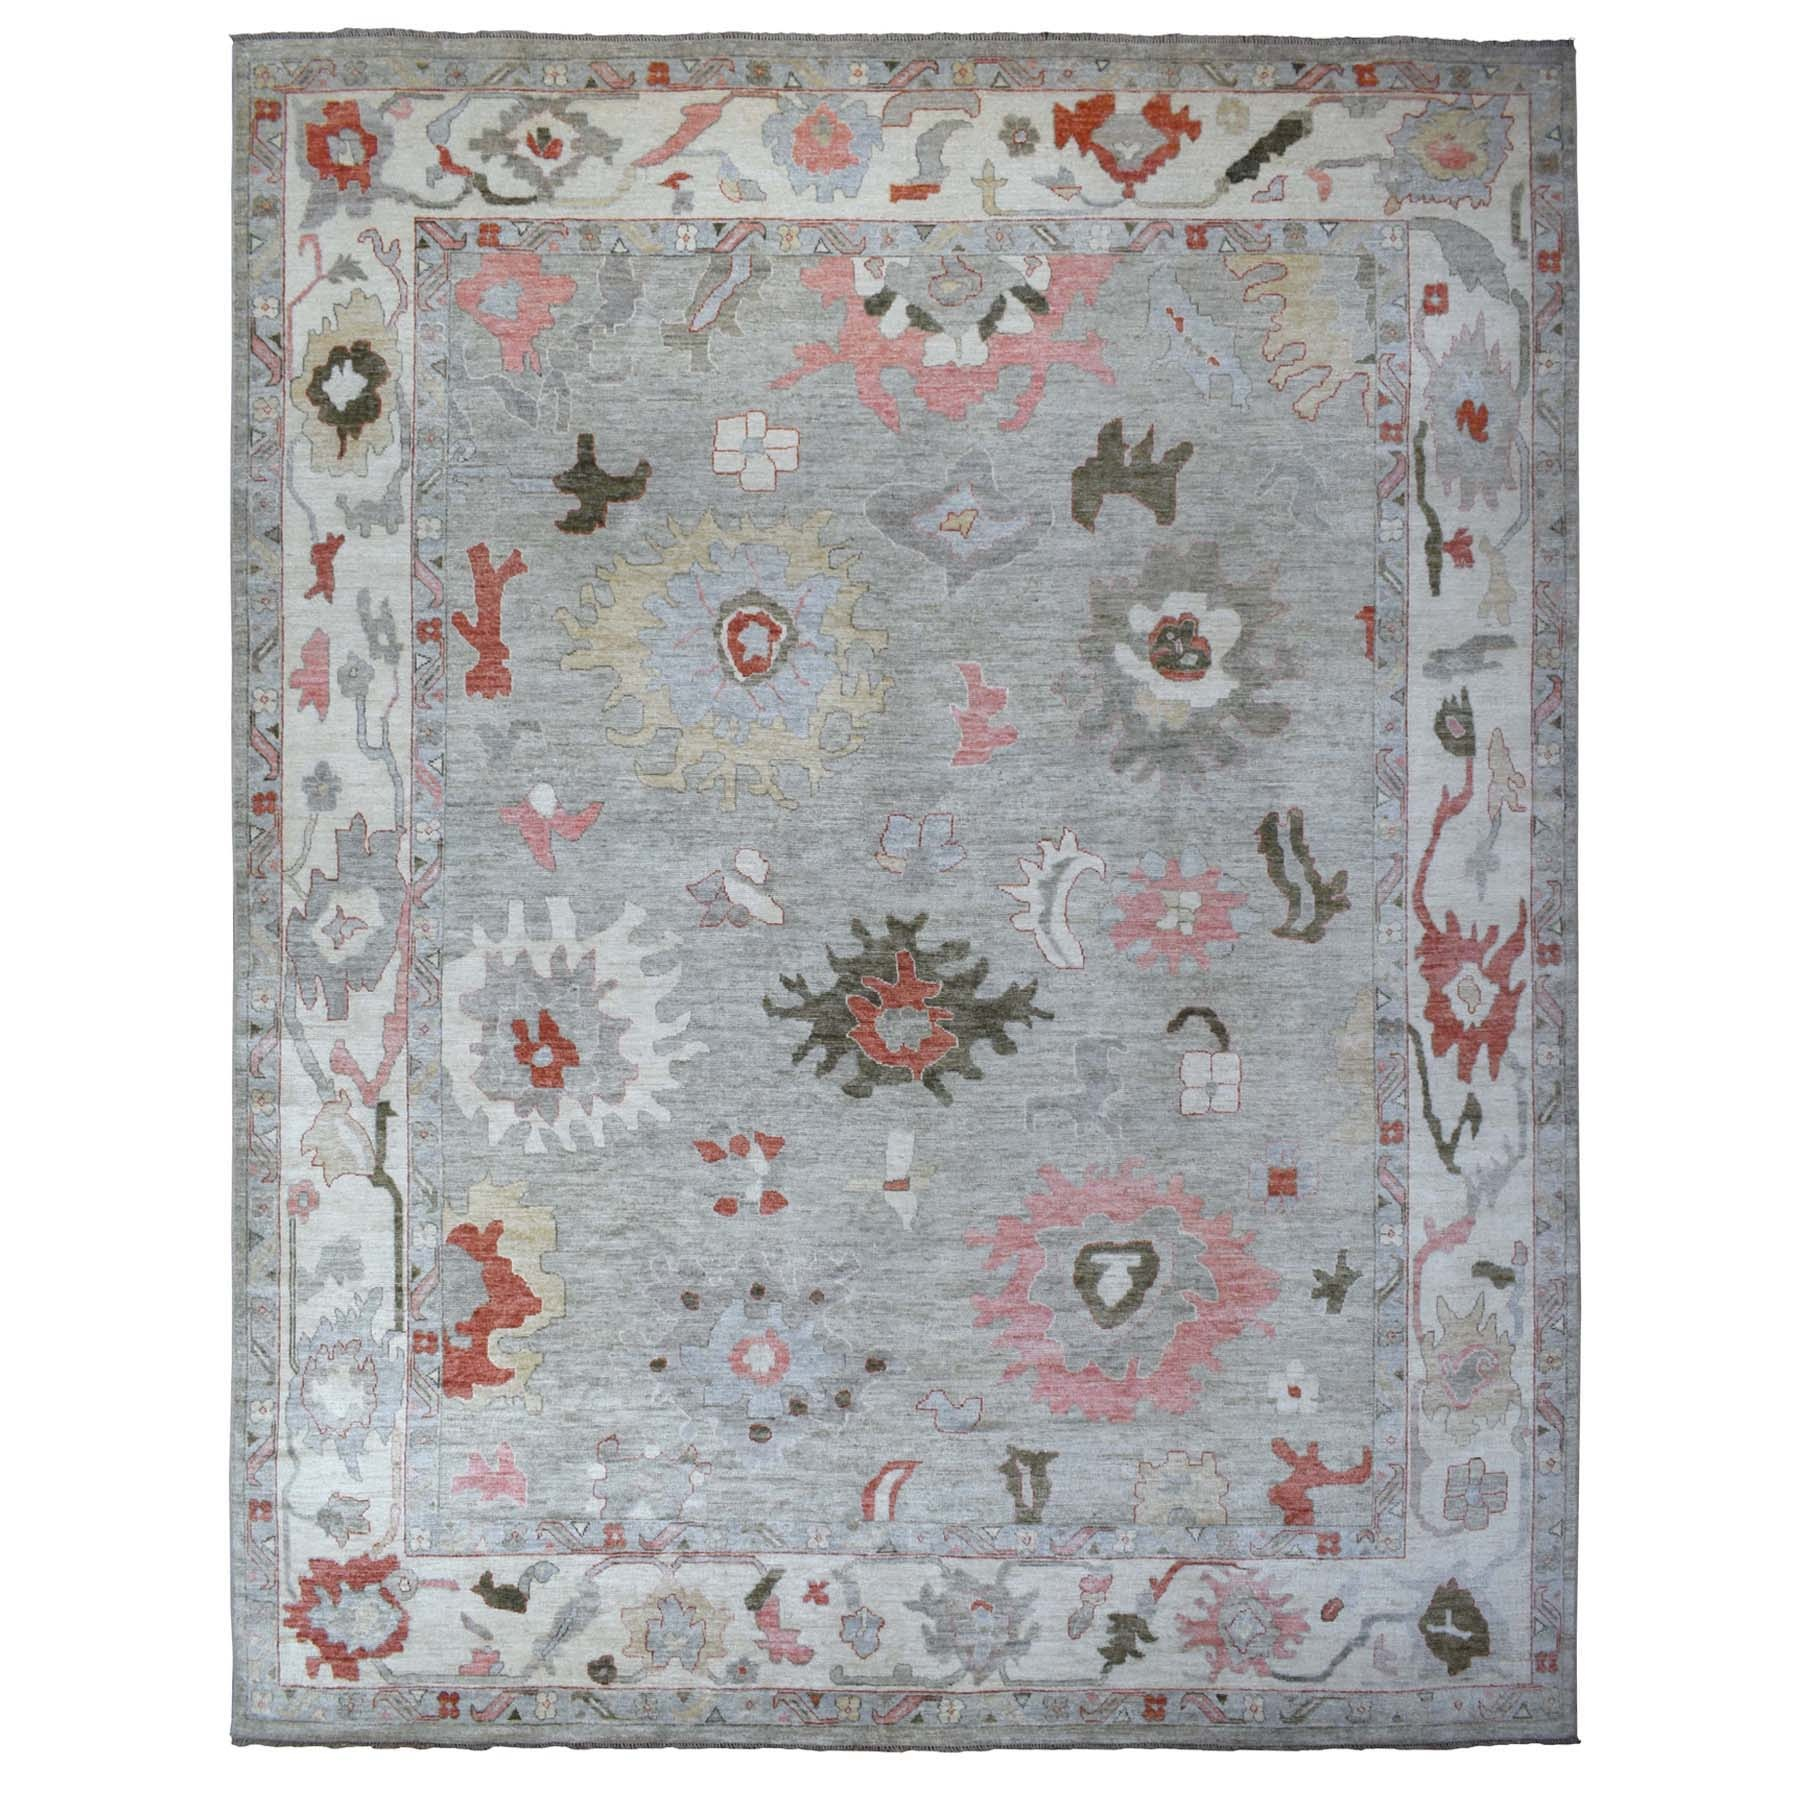 12'x15' Hand Knotted Gray Oversize Angora Oushak With Soft Velvety Wool Oriental Rug